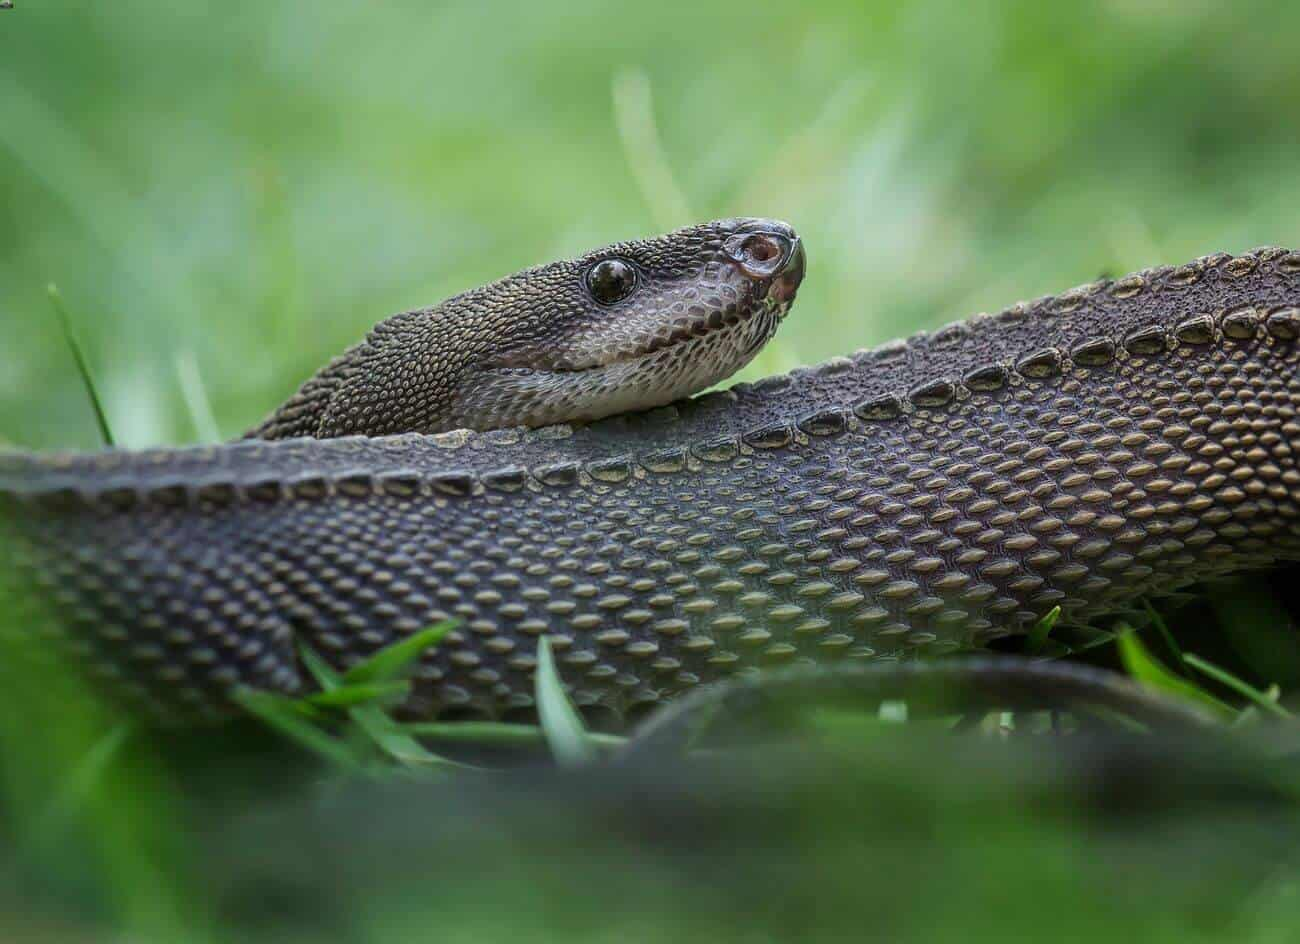 A dragon snake coiled up